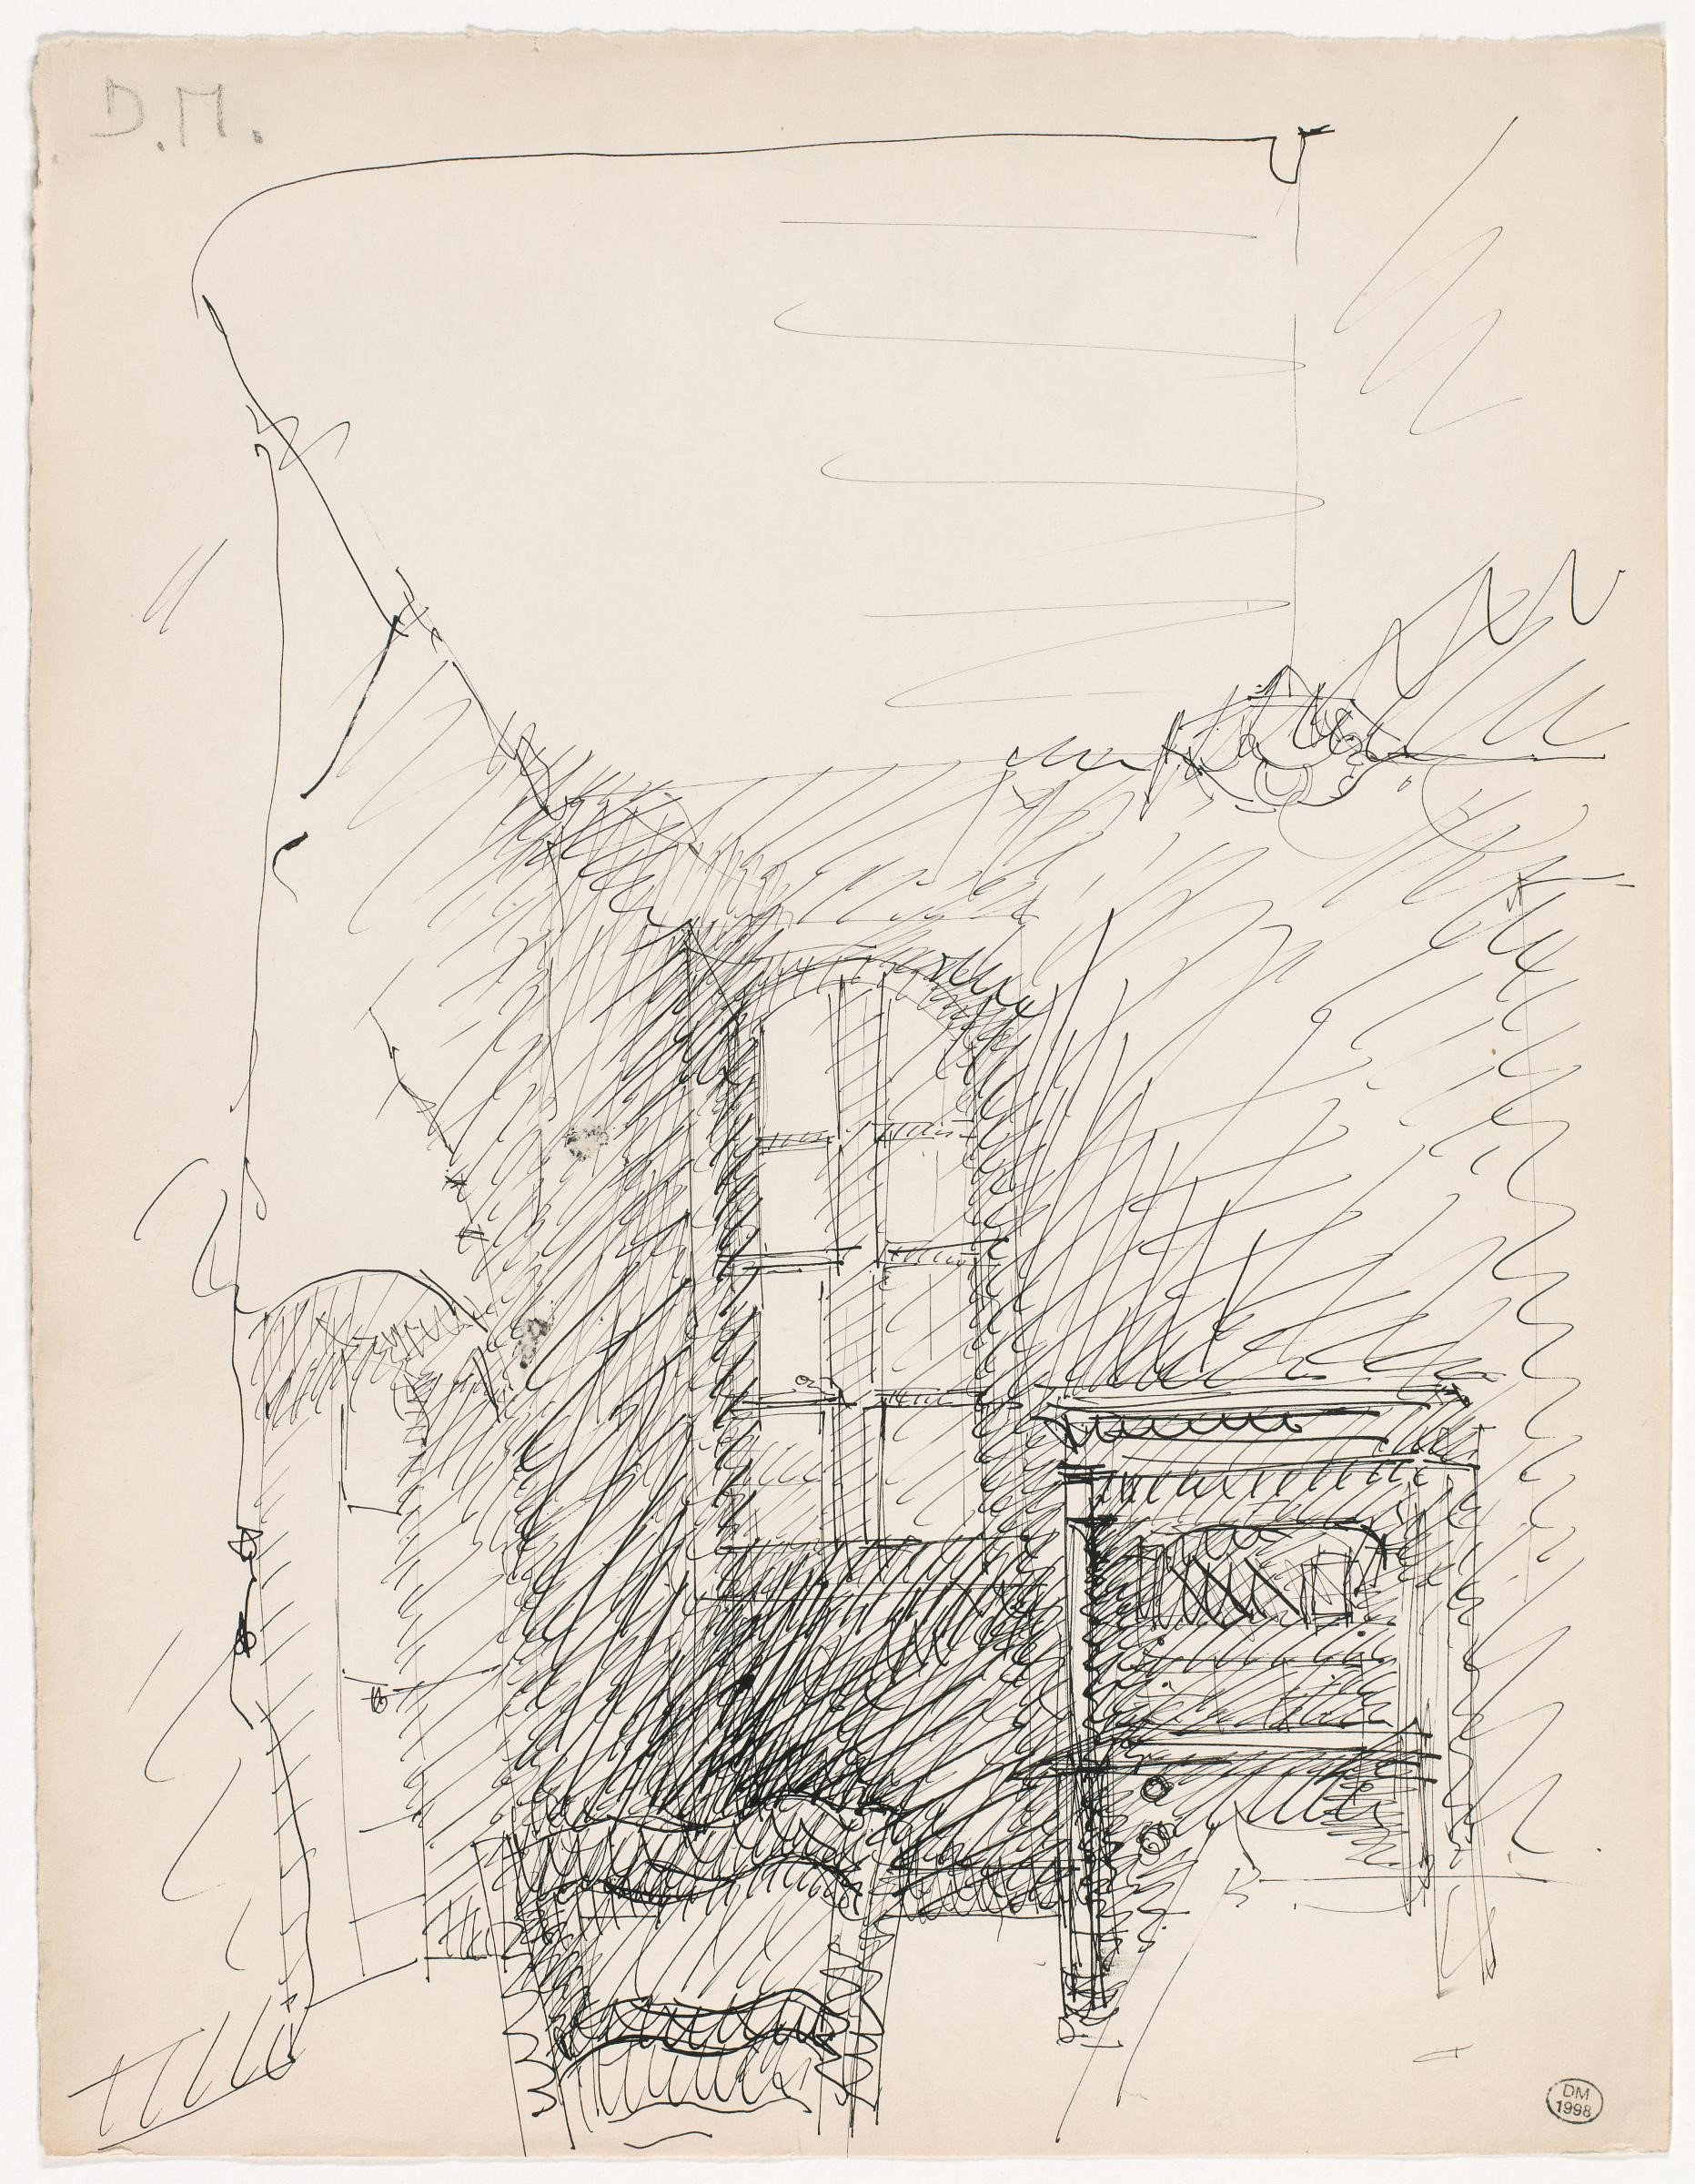 FOR DORA MAAR SYMPOSIUM ONLY - dora maar ink drawing of house